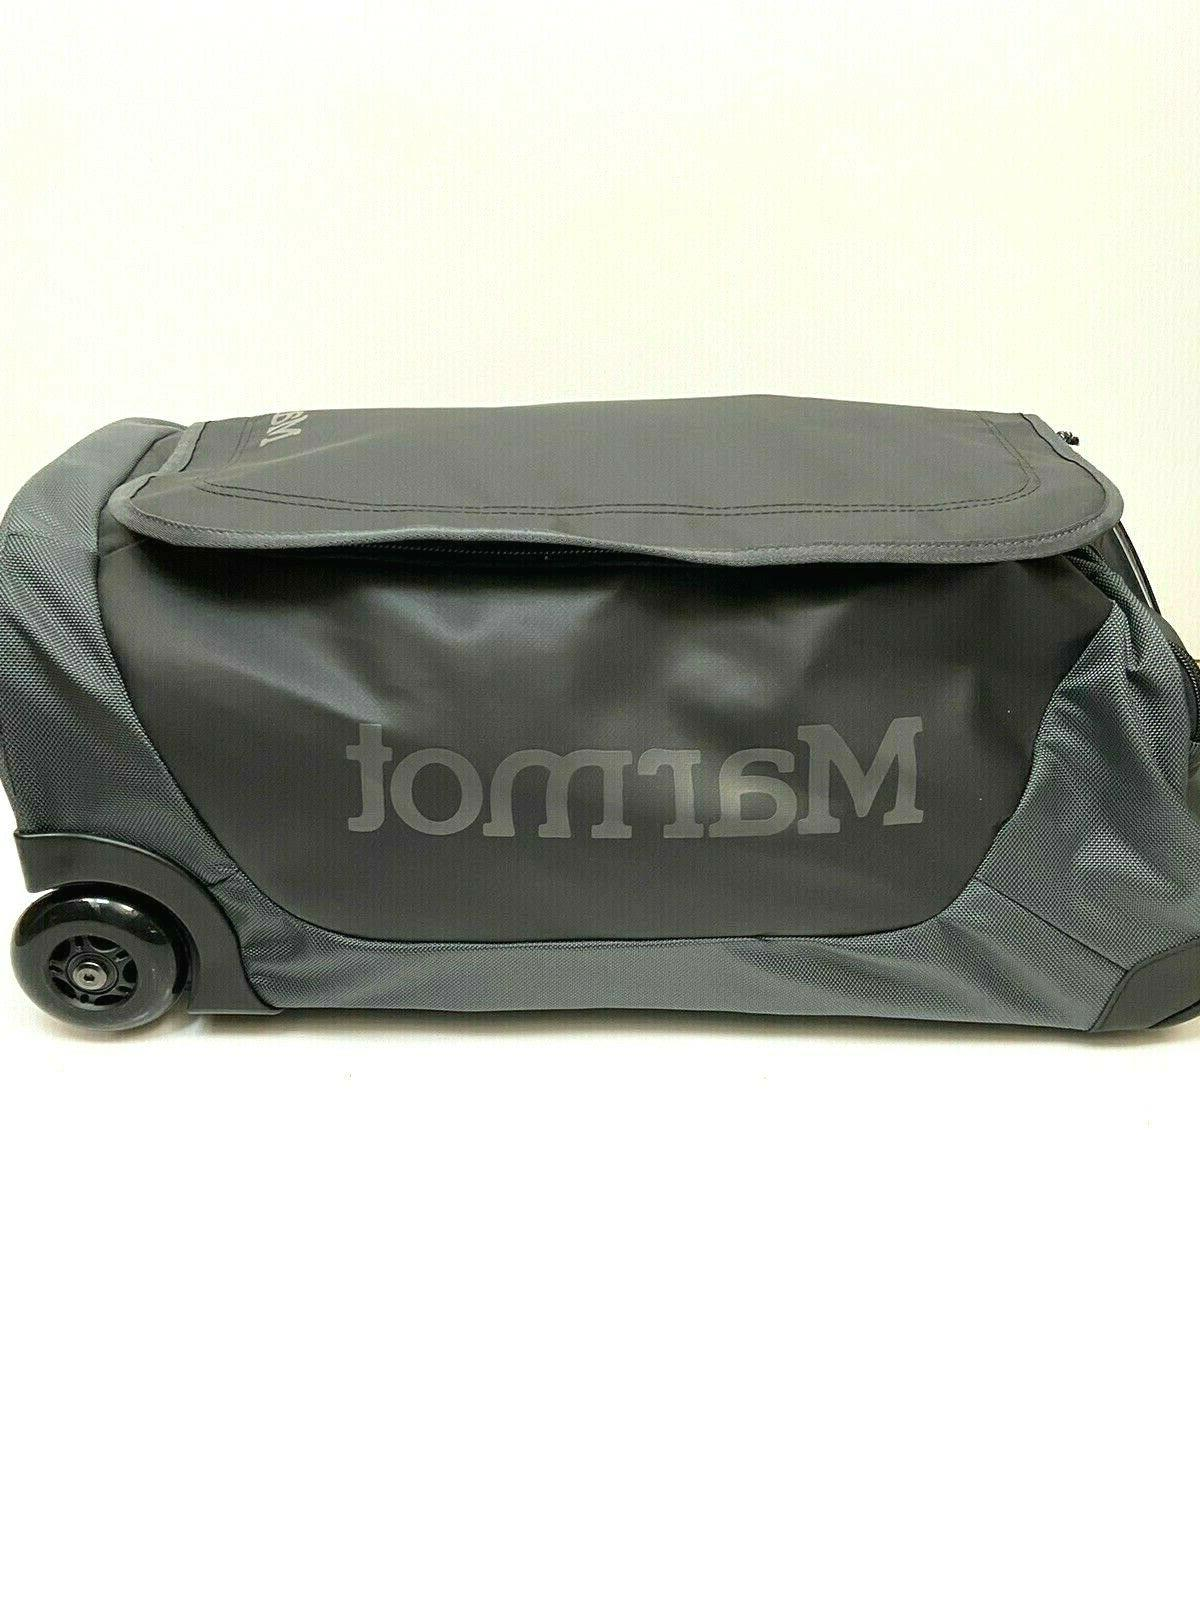 MARMOT Rolling Carry On Duffle Luggage Bag Travel Suitcase 40L